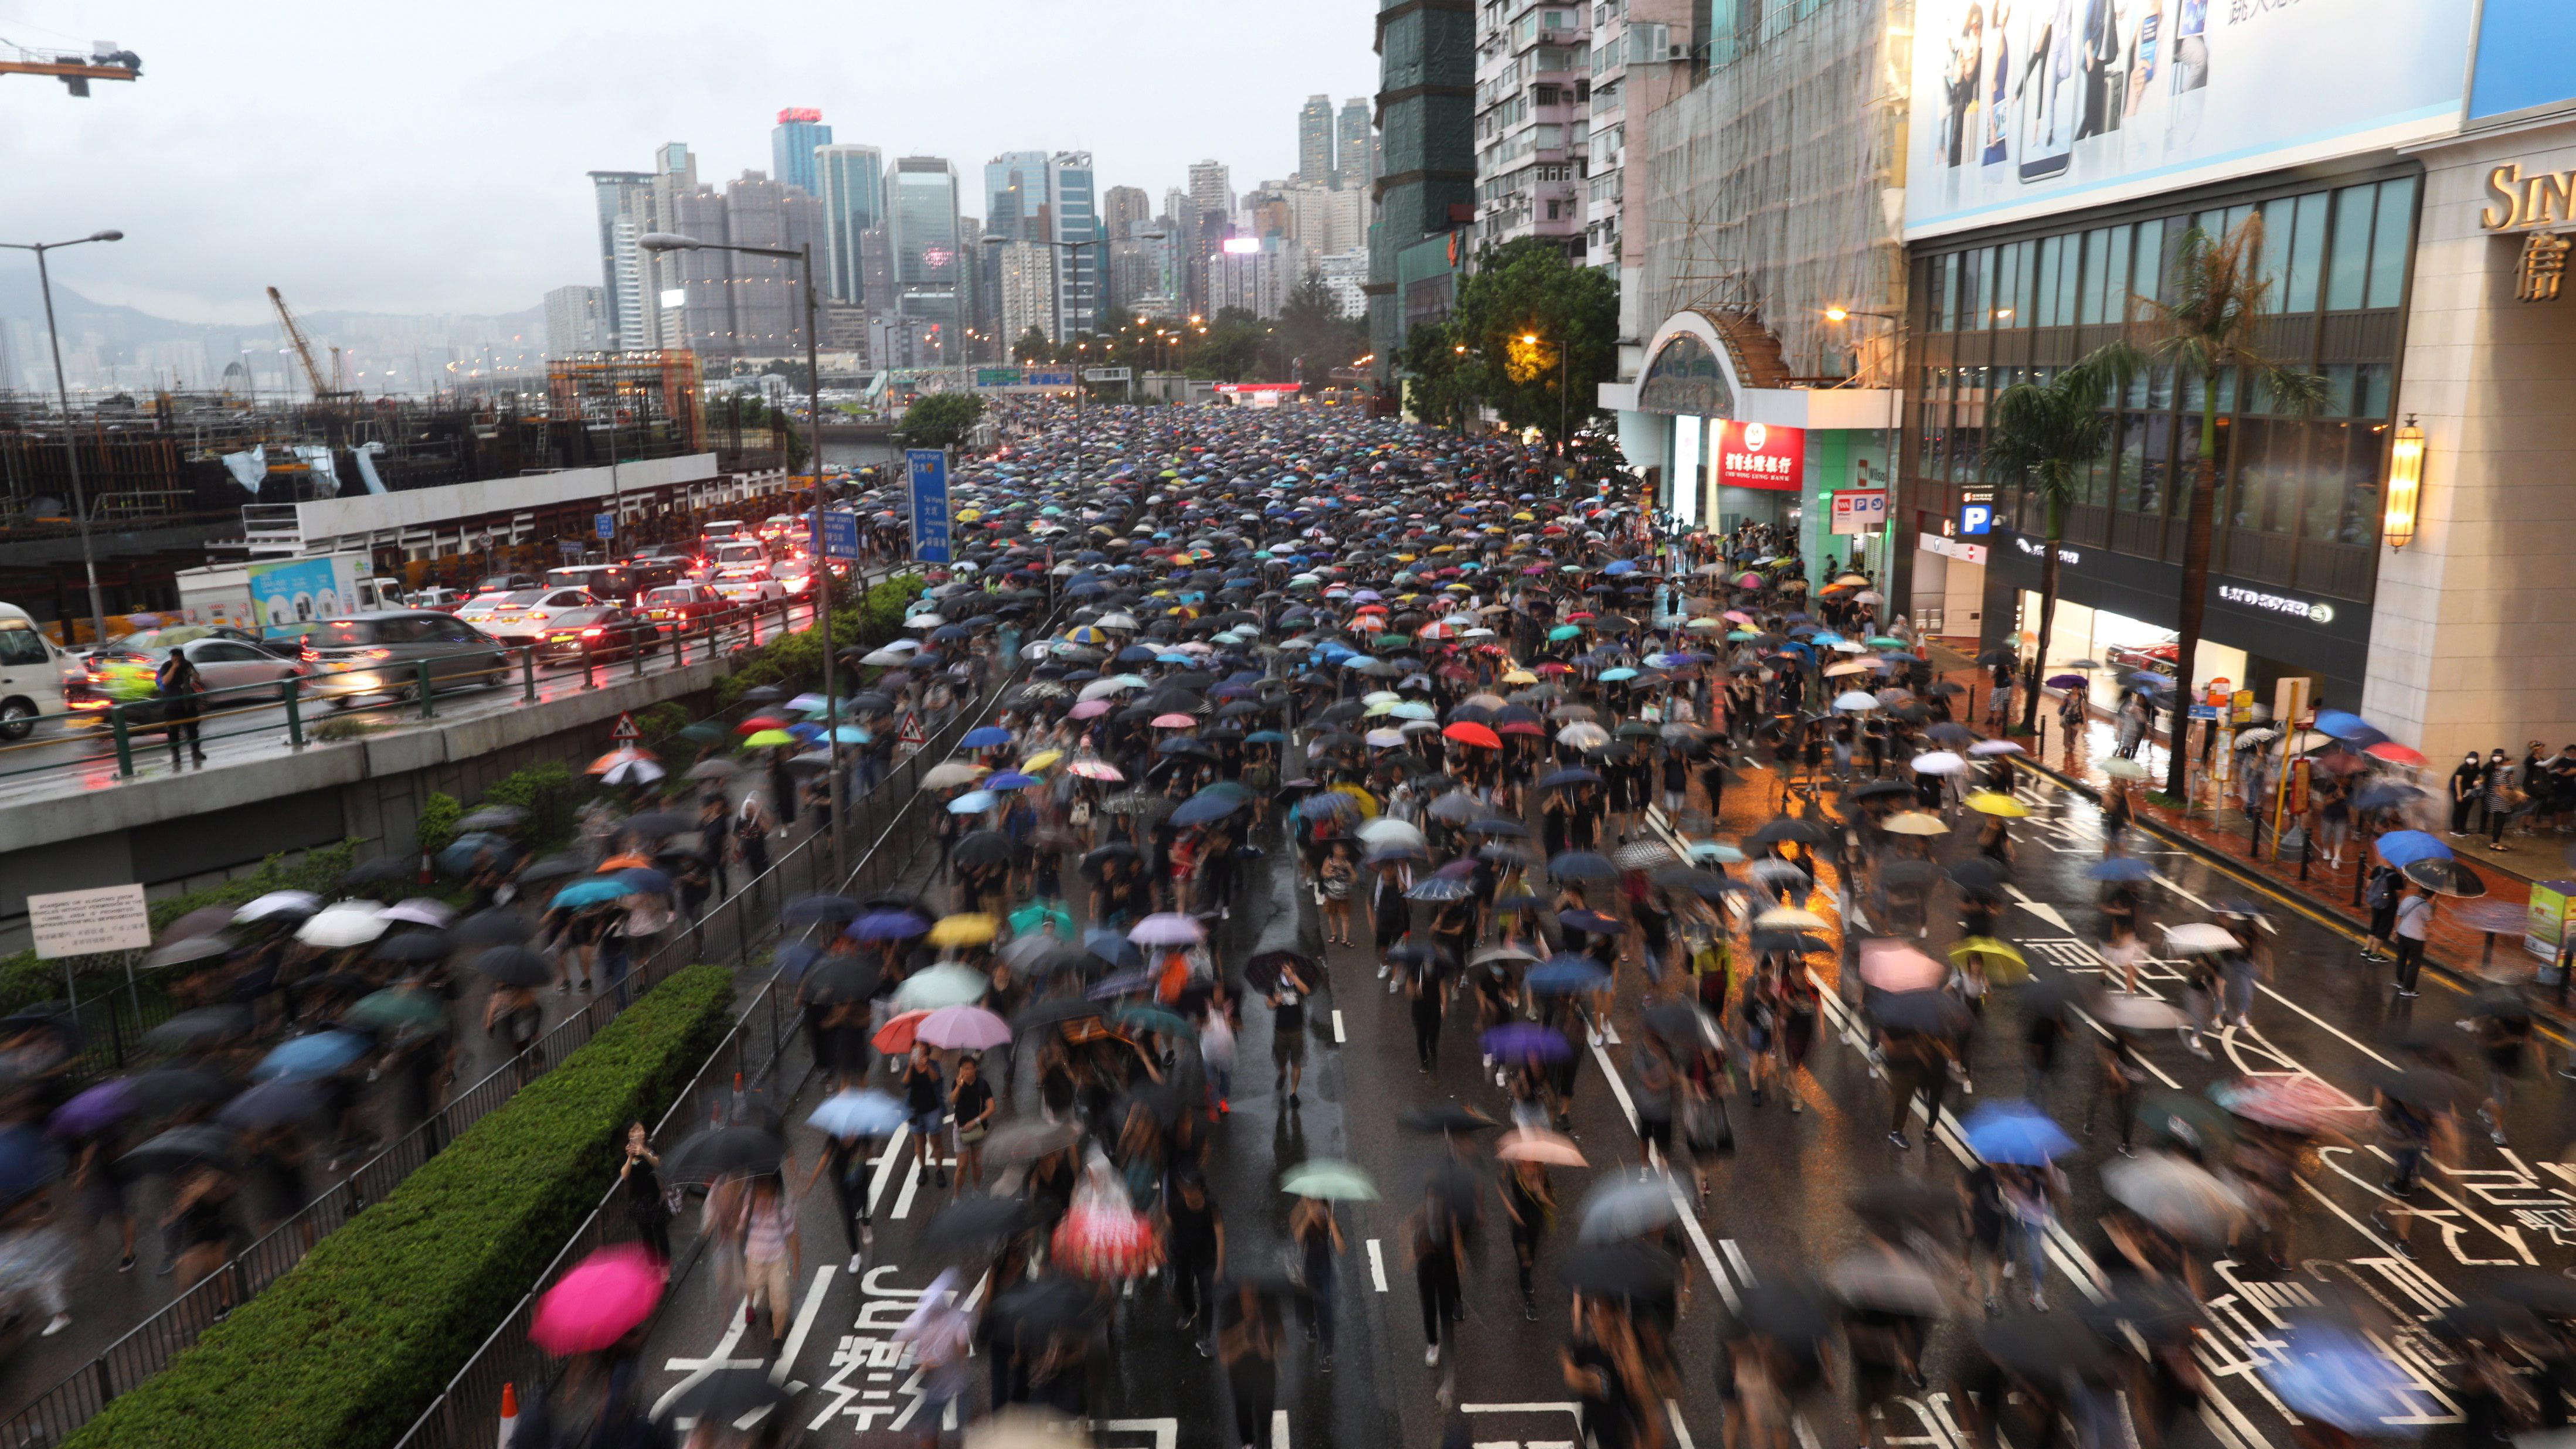 1 7M march in latest Hong Kong protest, say organizers